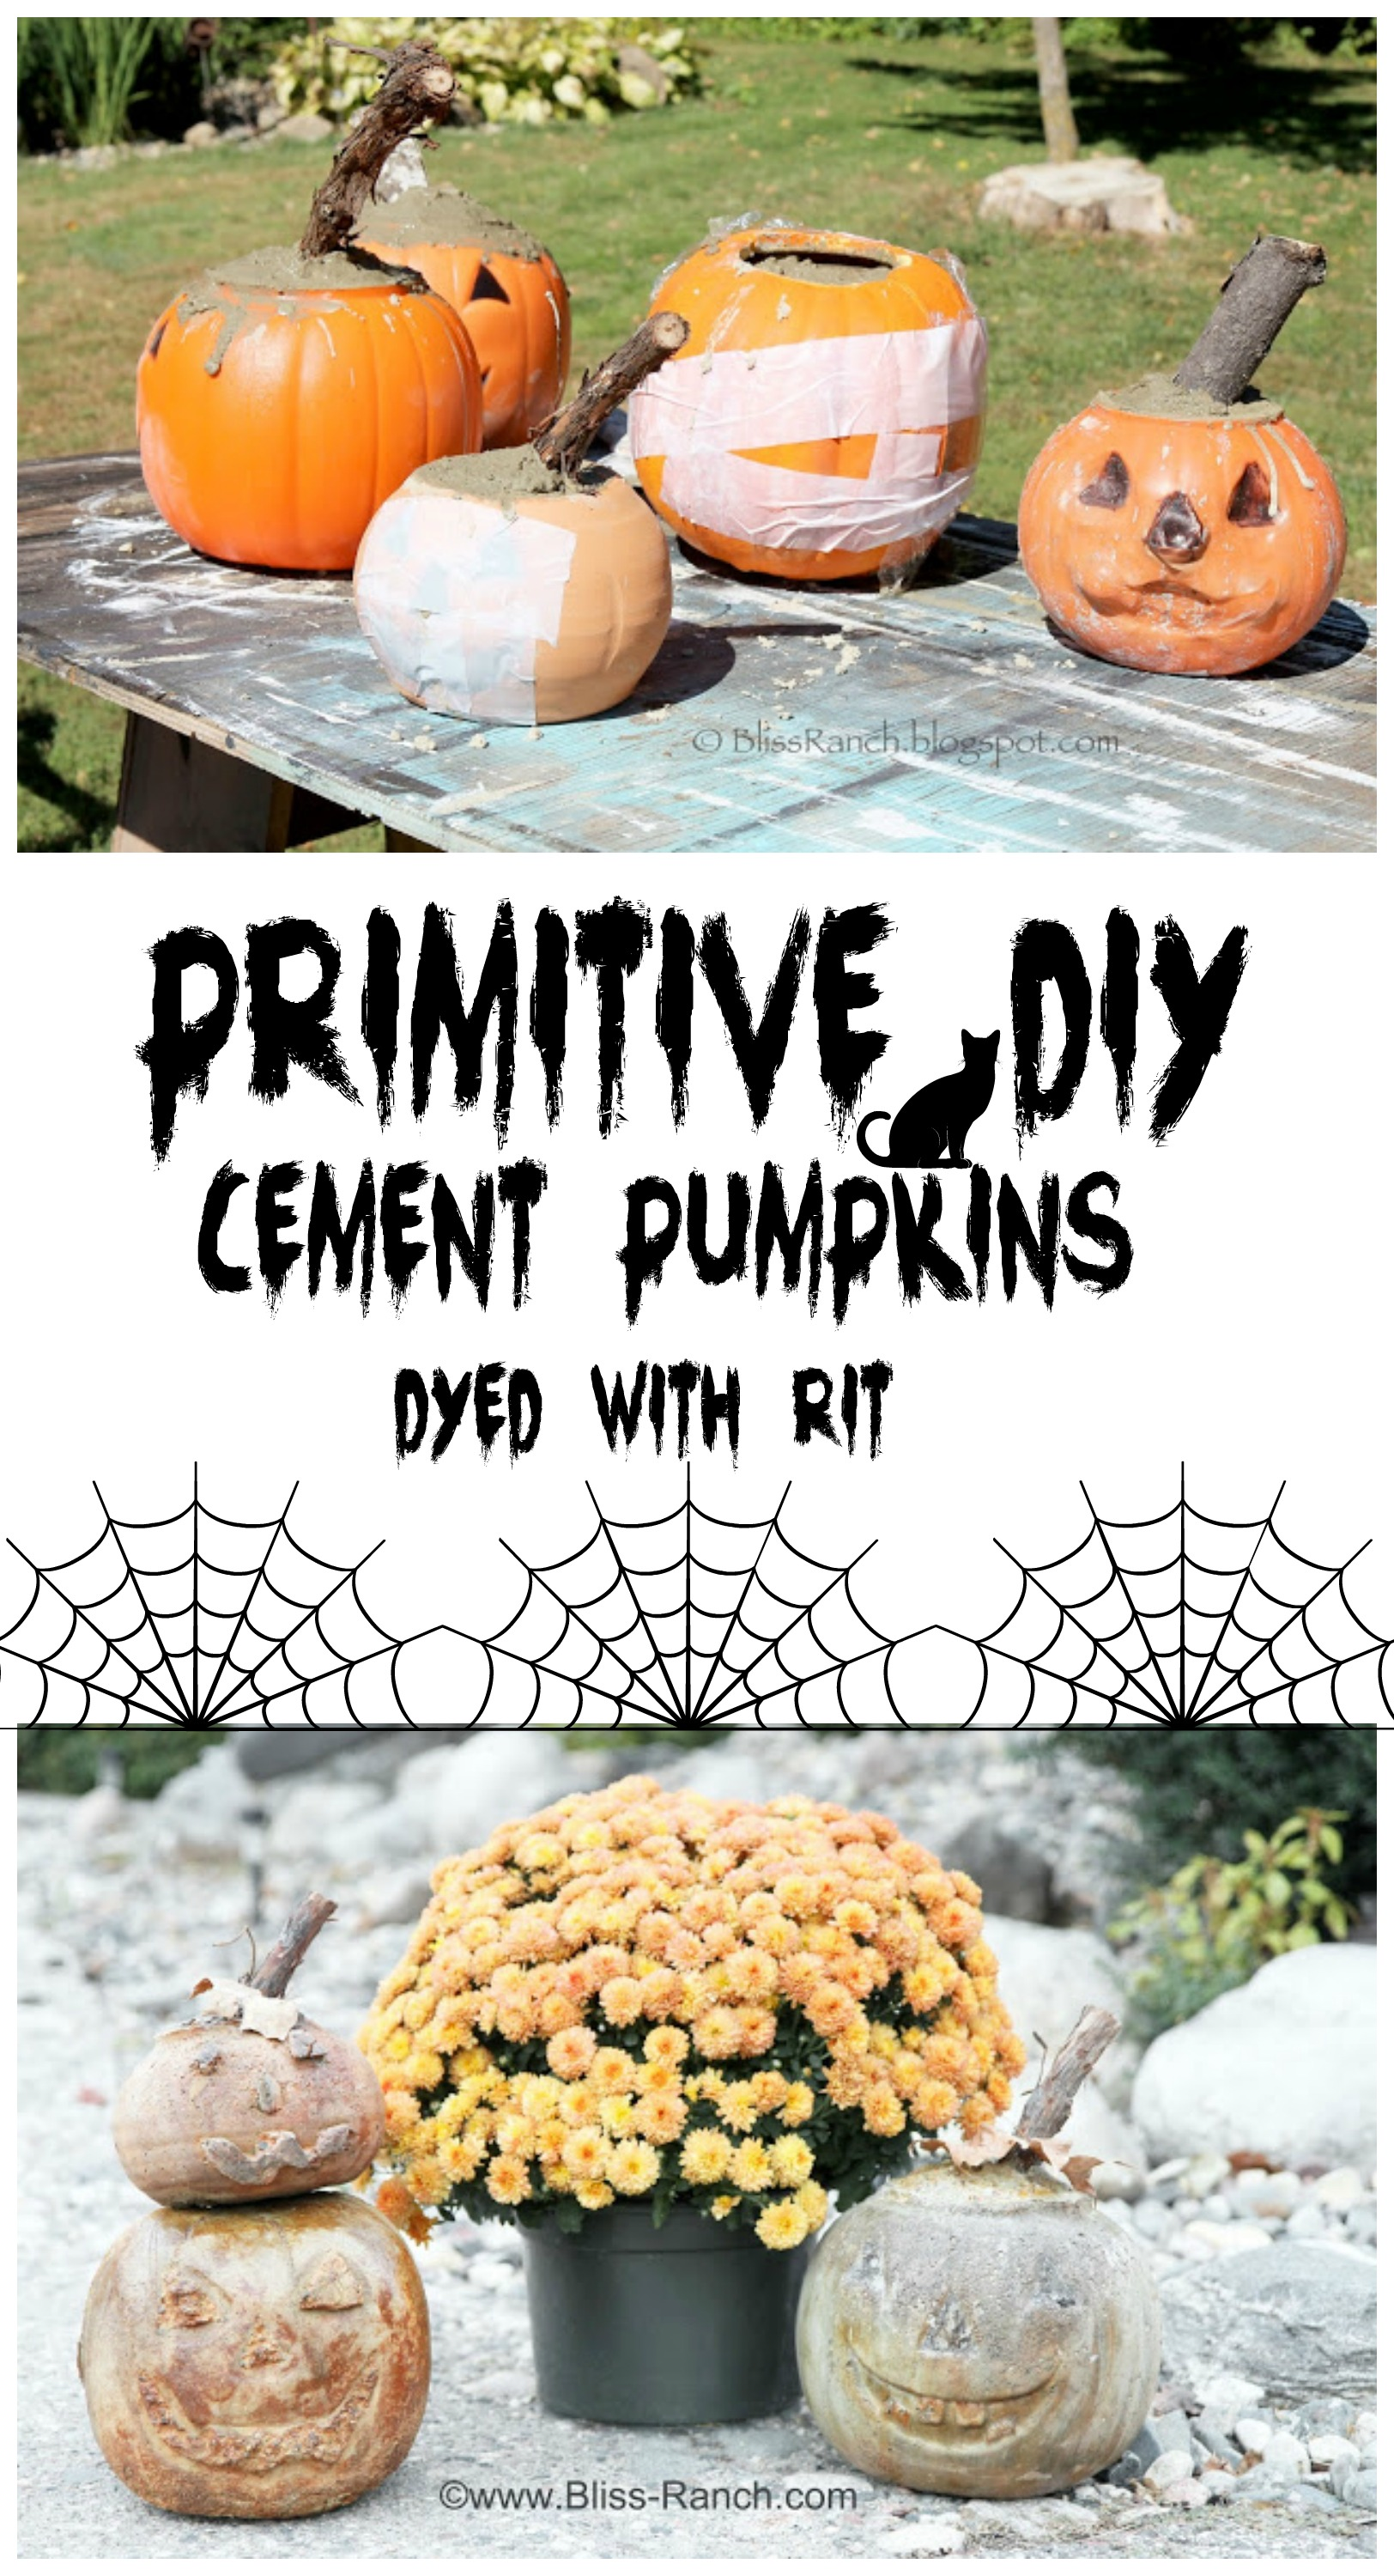 Primitive diy cement pumpkins dyed with rit dye